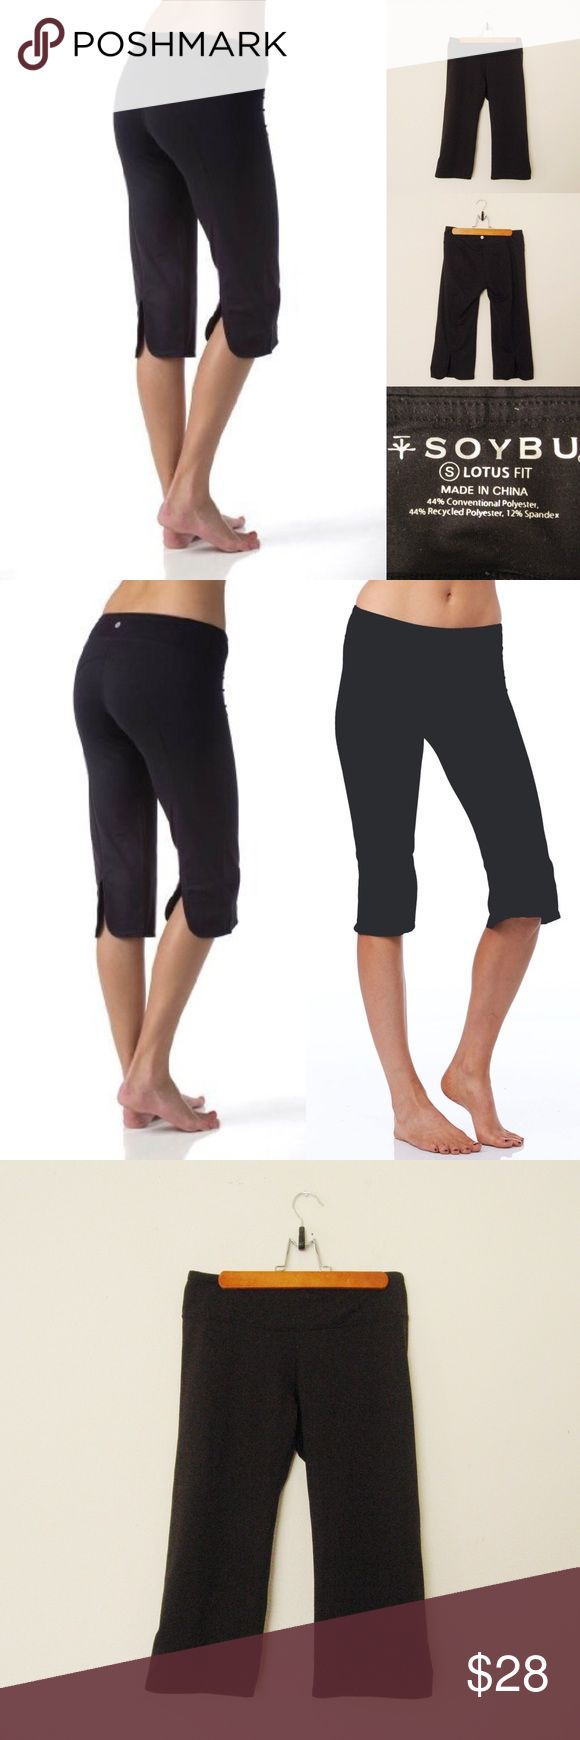 """Soybu Lotus Fit Yoga Capri SOYBU Lotus Fit Yoga Capri Pants. Size S.  Excellent condition. Worn 2-3 times. No flaws. Materials: 44% Polyester/12%Spandex                                                                          Features: Split cuffs/Relax fit/stretchy/sweat wicking/flatlock stitching for durability  Actual Measurements (laying flat): • Waist - 26"""" (around)  • Rise - 10"""" • Inseam - 18""""  • Length - 25"""" (waist to hem) • Leg Cuff - 7.5"""" ~❌SWAP❌TRADE ~ ✔️❤️Bundles📦💕…"""